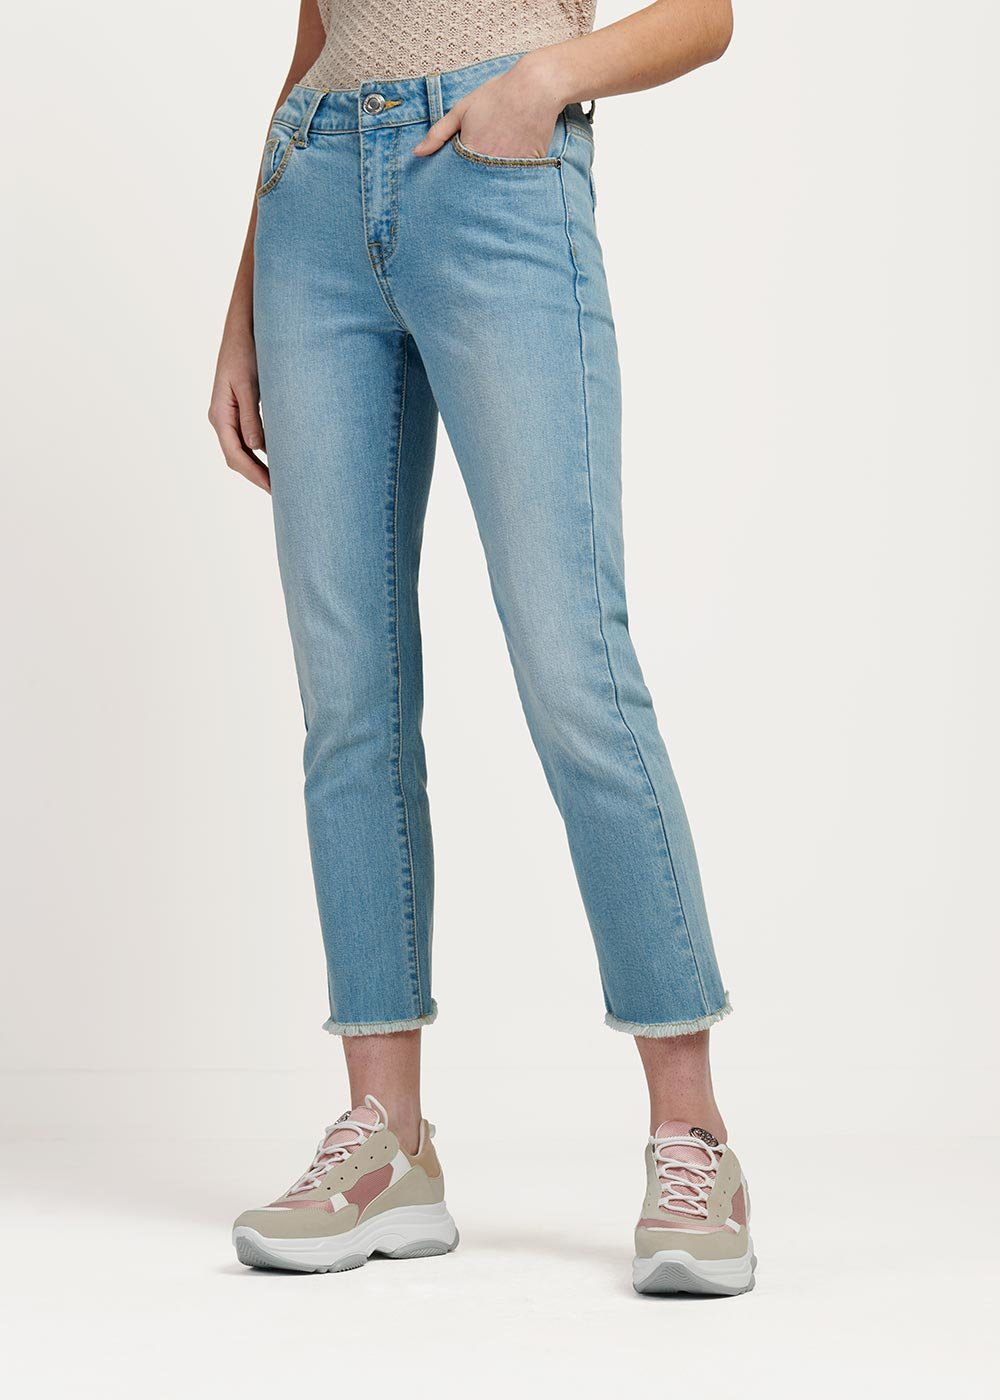 Prinus fringed denim capri trousers - Light Denim - Woman